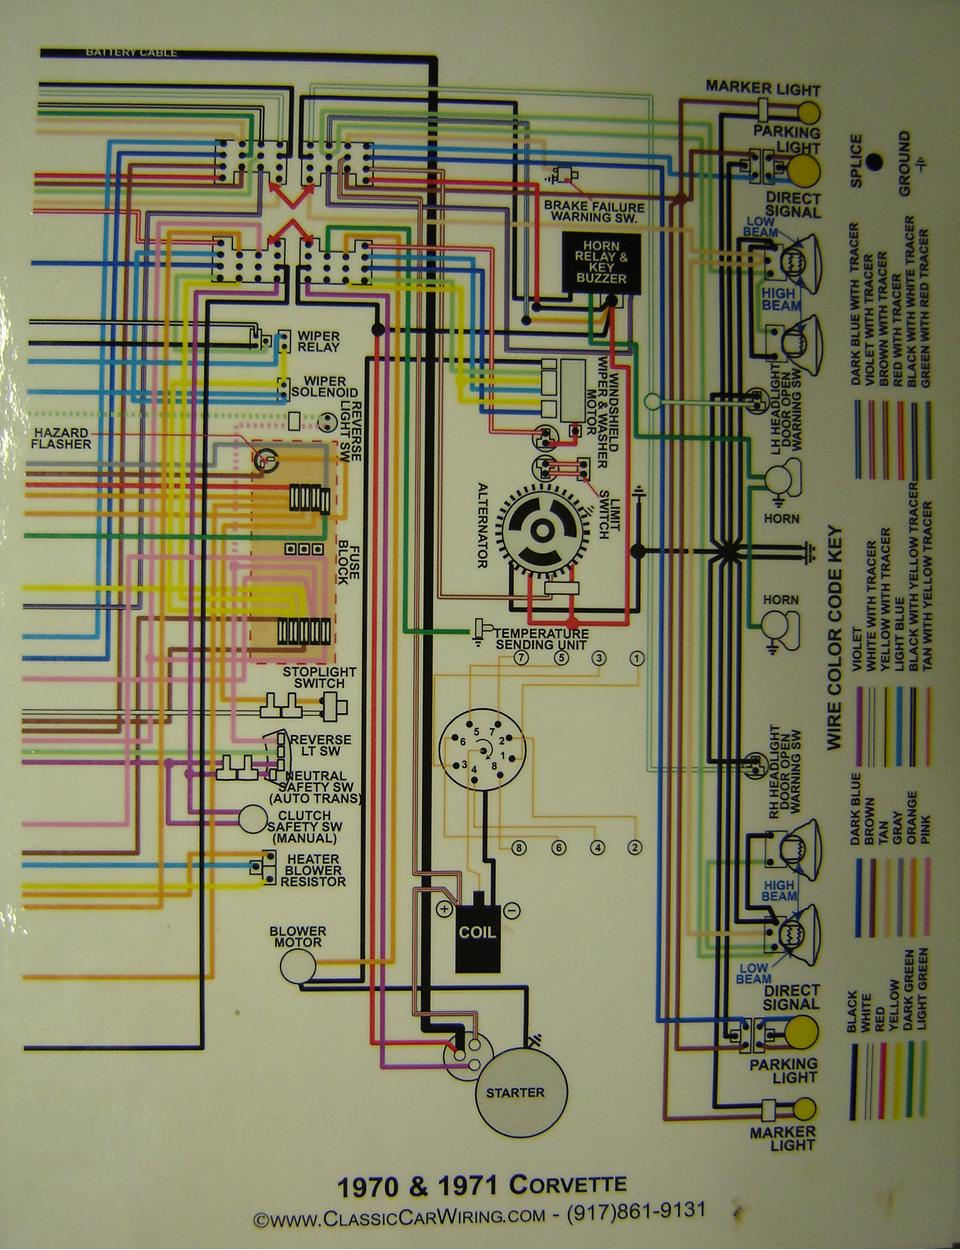 1970 71 corvette color wiring diagram B chevy diagrams 1971 el camino wiring diagram at mifinder.co